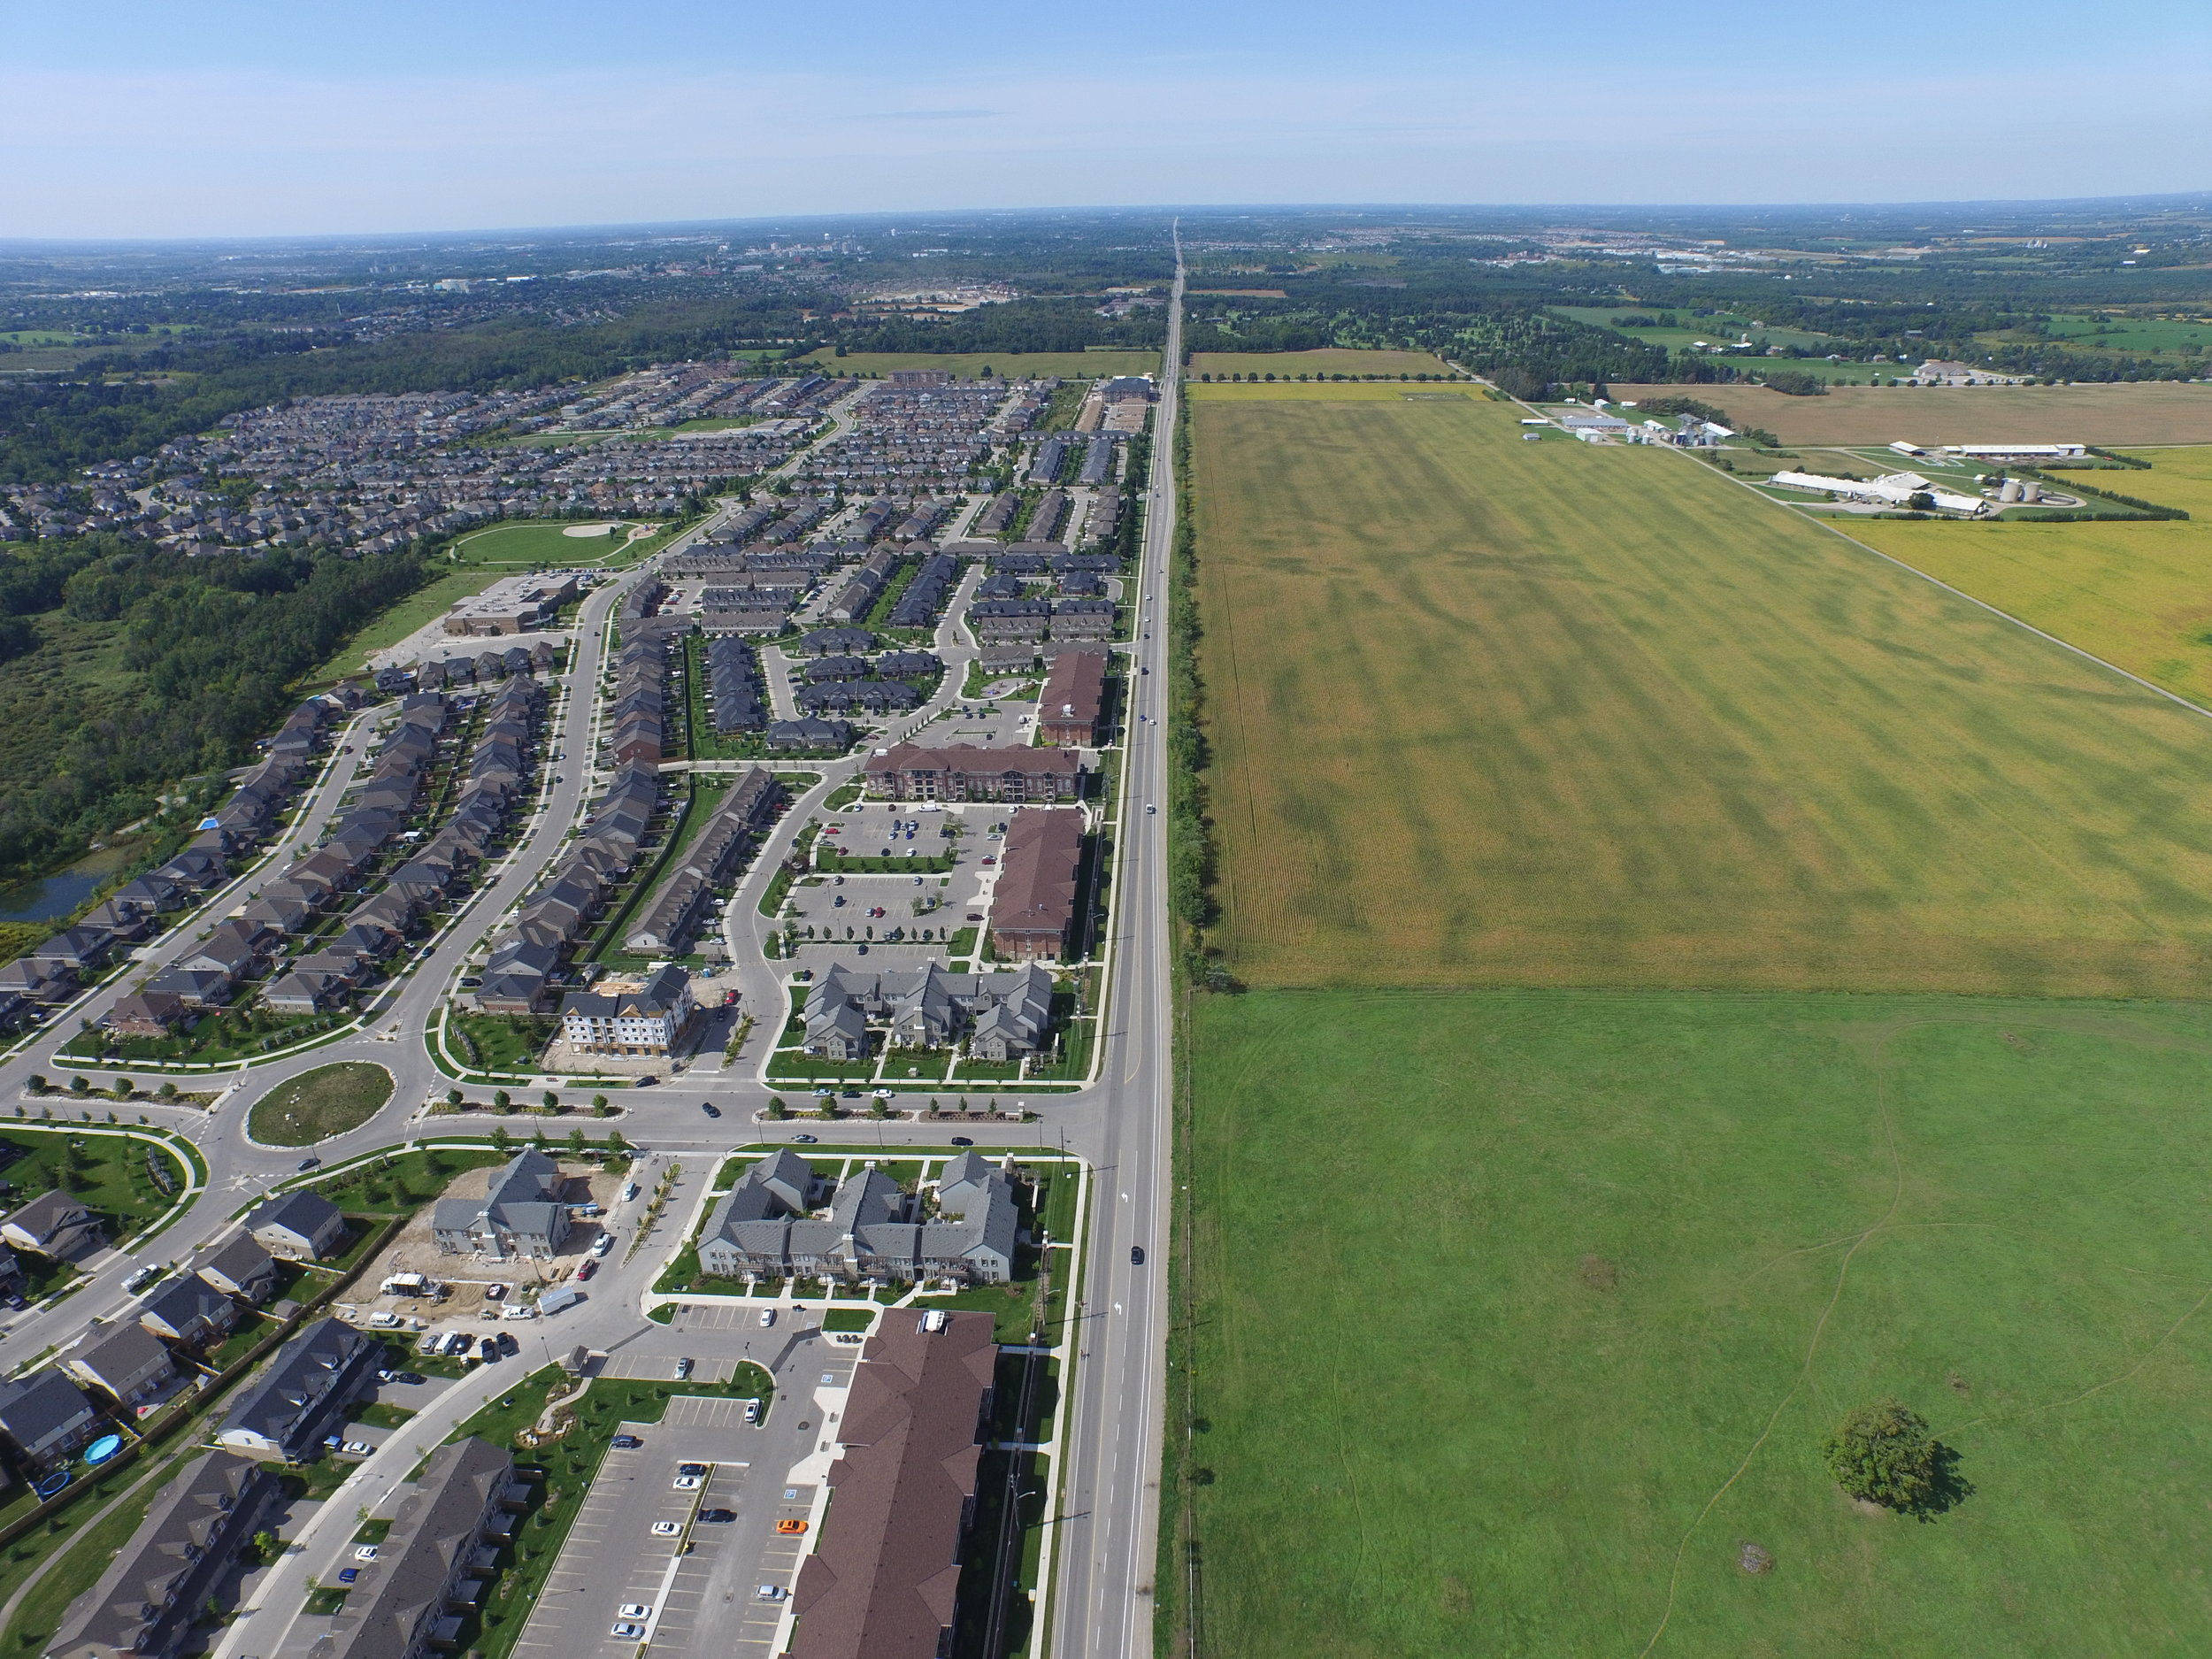 """Aerial view of """"Urban Sprawl"""" in the famous Greater Golden Horseshoe area of Ontario, where farmland has already been paved over for unsustainable low-density sprawl development and up to 31,000 acres of more farmland areas are at immediate risk   Source:  OntarioFarmlandTrust.ca"""